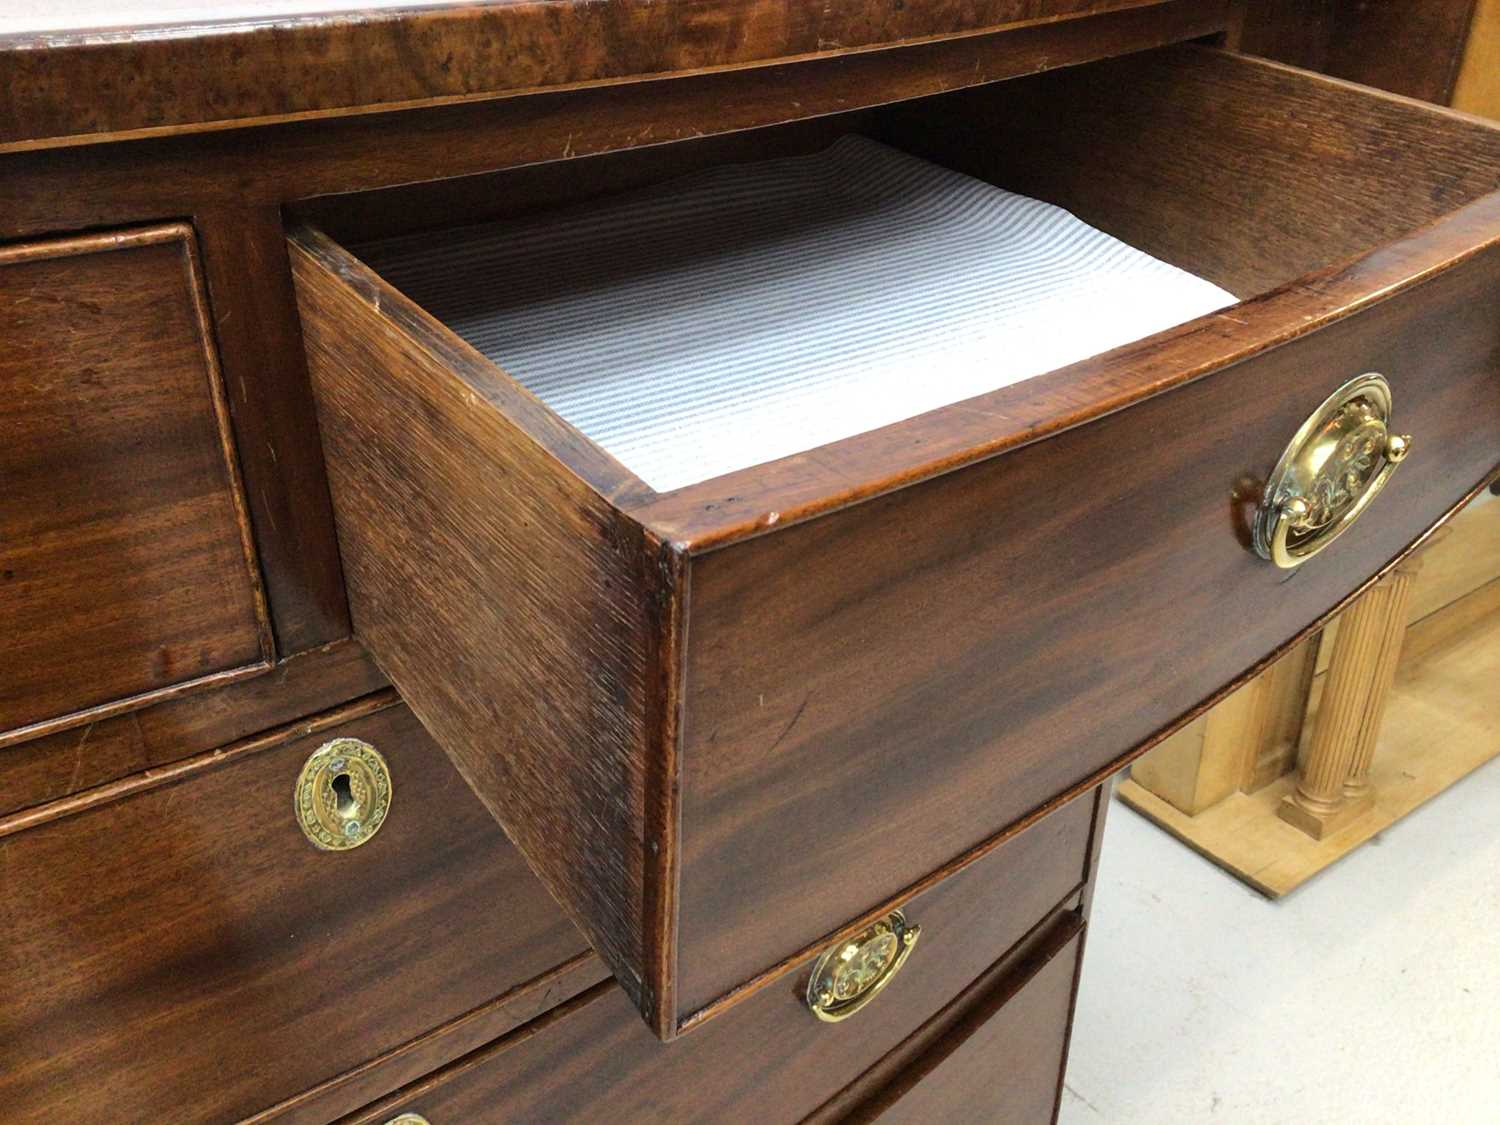 19th century inlaid mahogany bowfront chest of two short and three long graduated drawers on splayed - Image 6 of 6